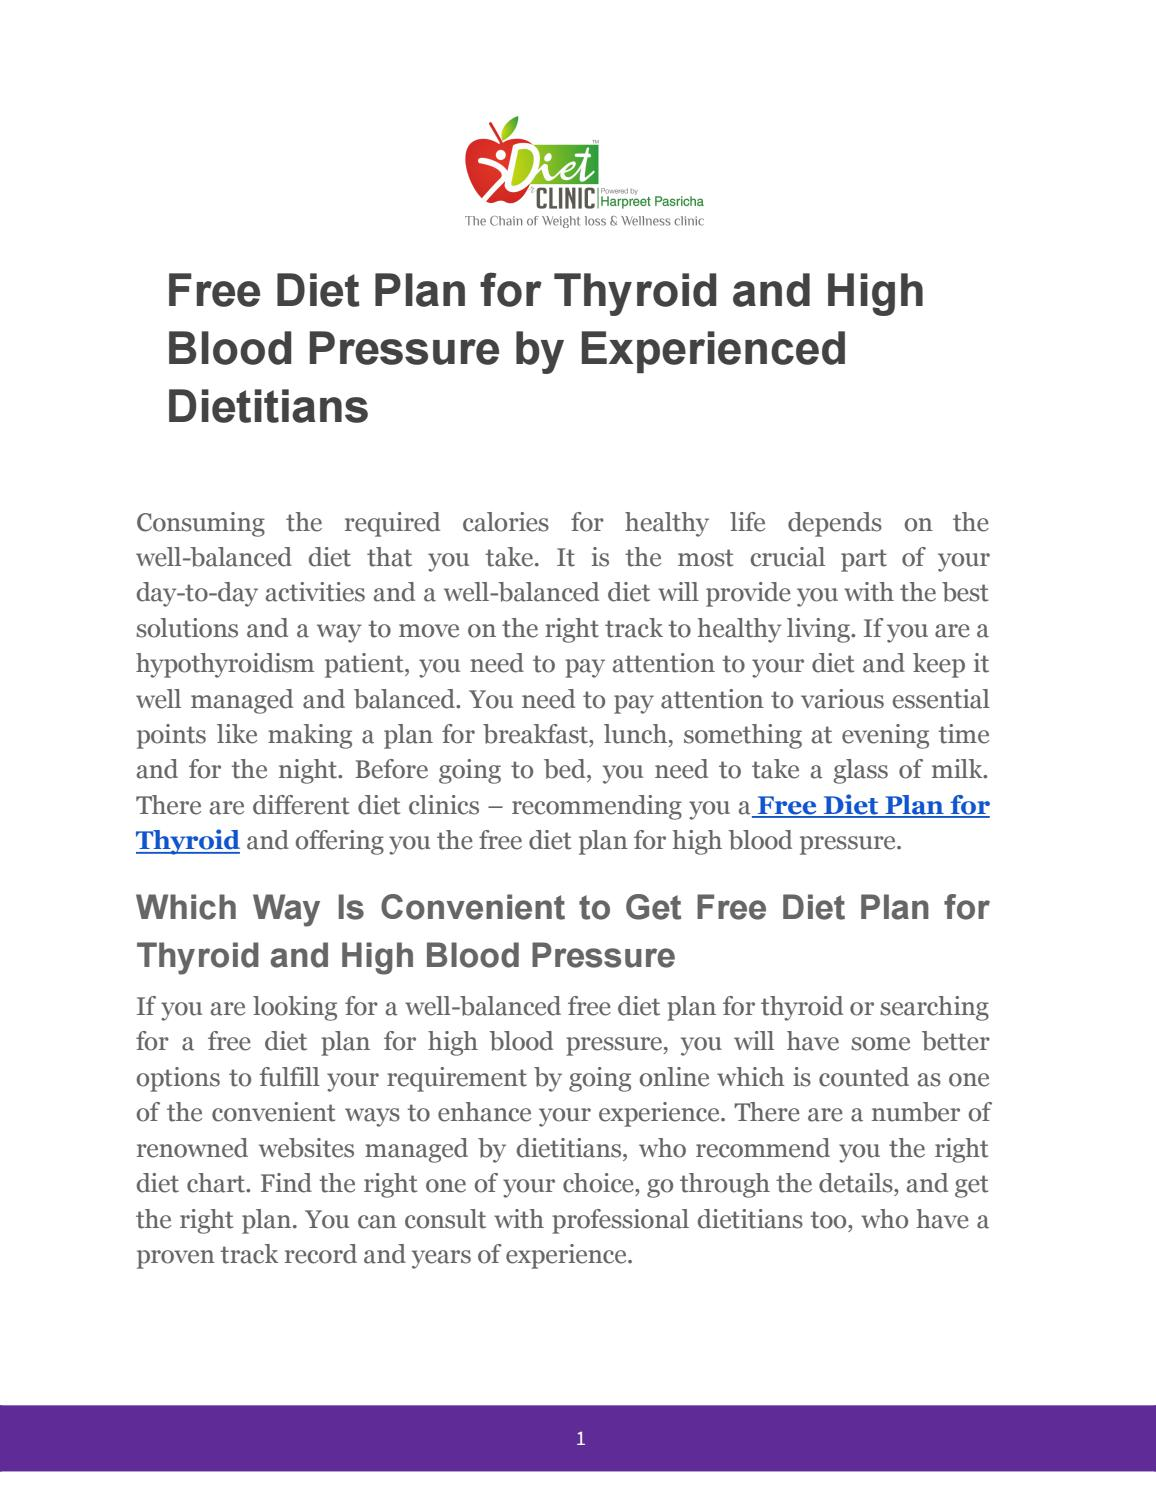 Free Diet Plan for Thyroid and High Blood Pressure by Experienced Dietitians